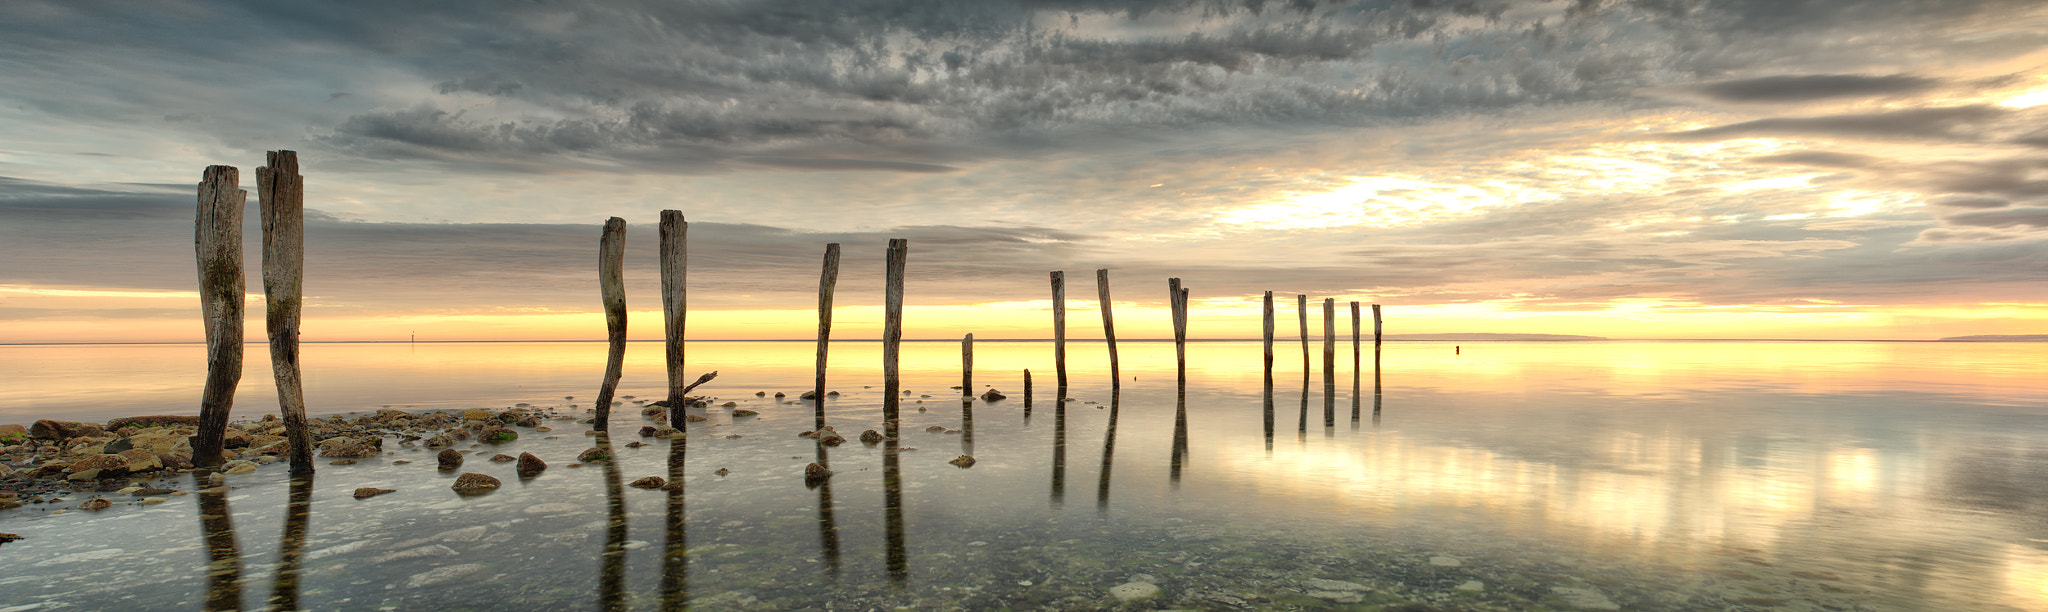 Photograph Imperfect Pairs by Timothy Poulton on 500px